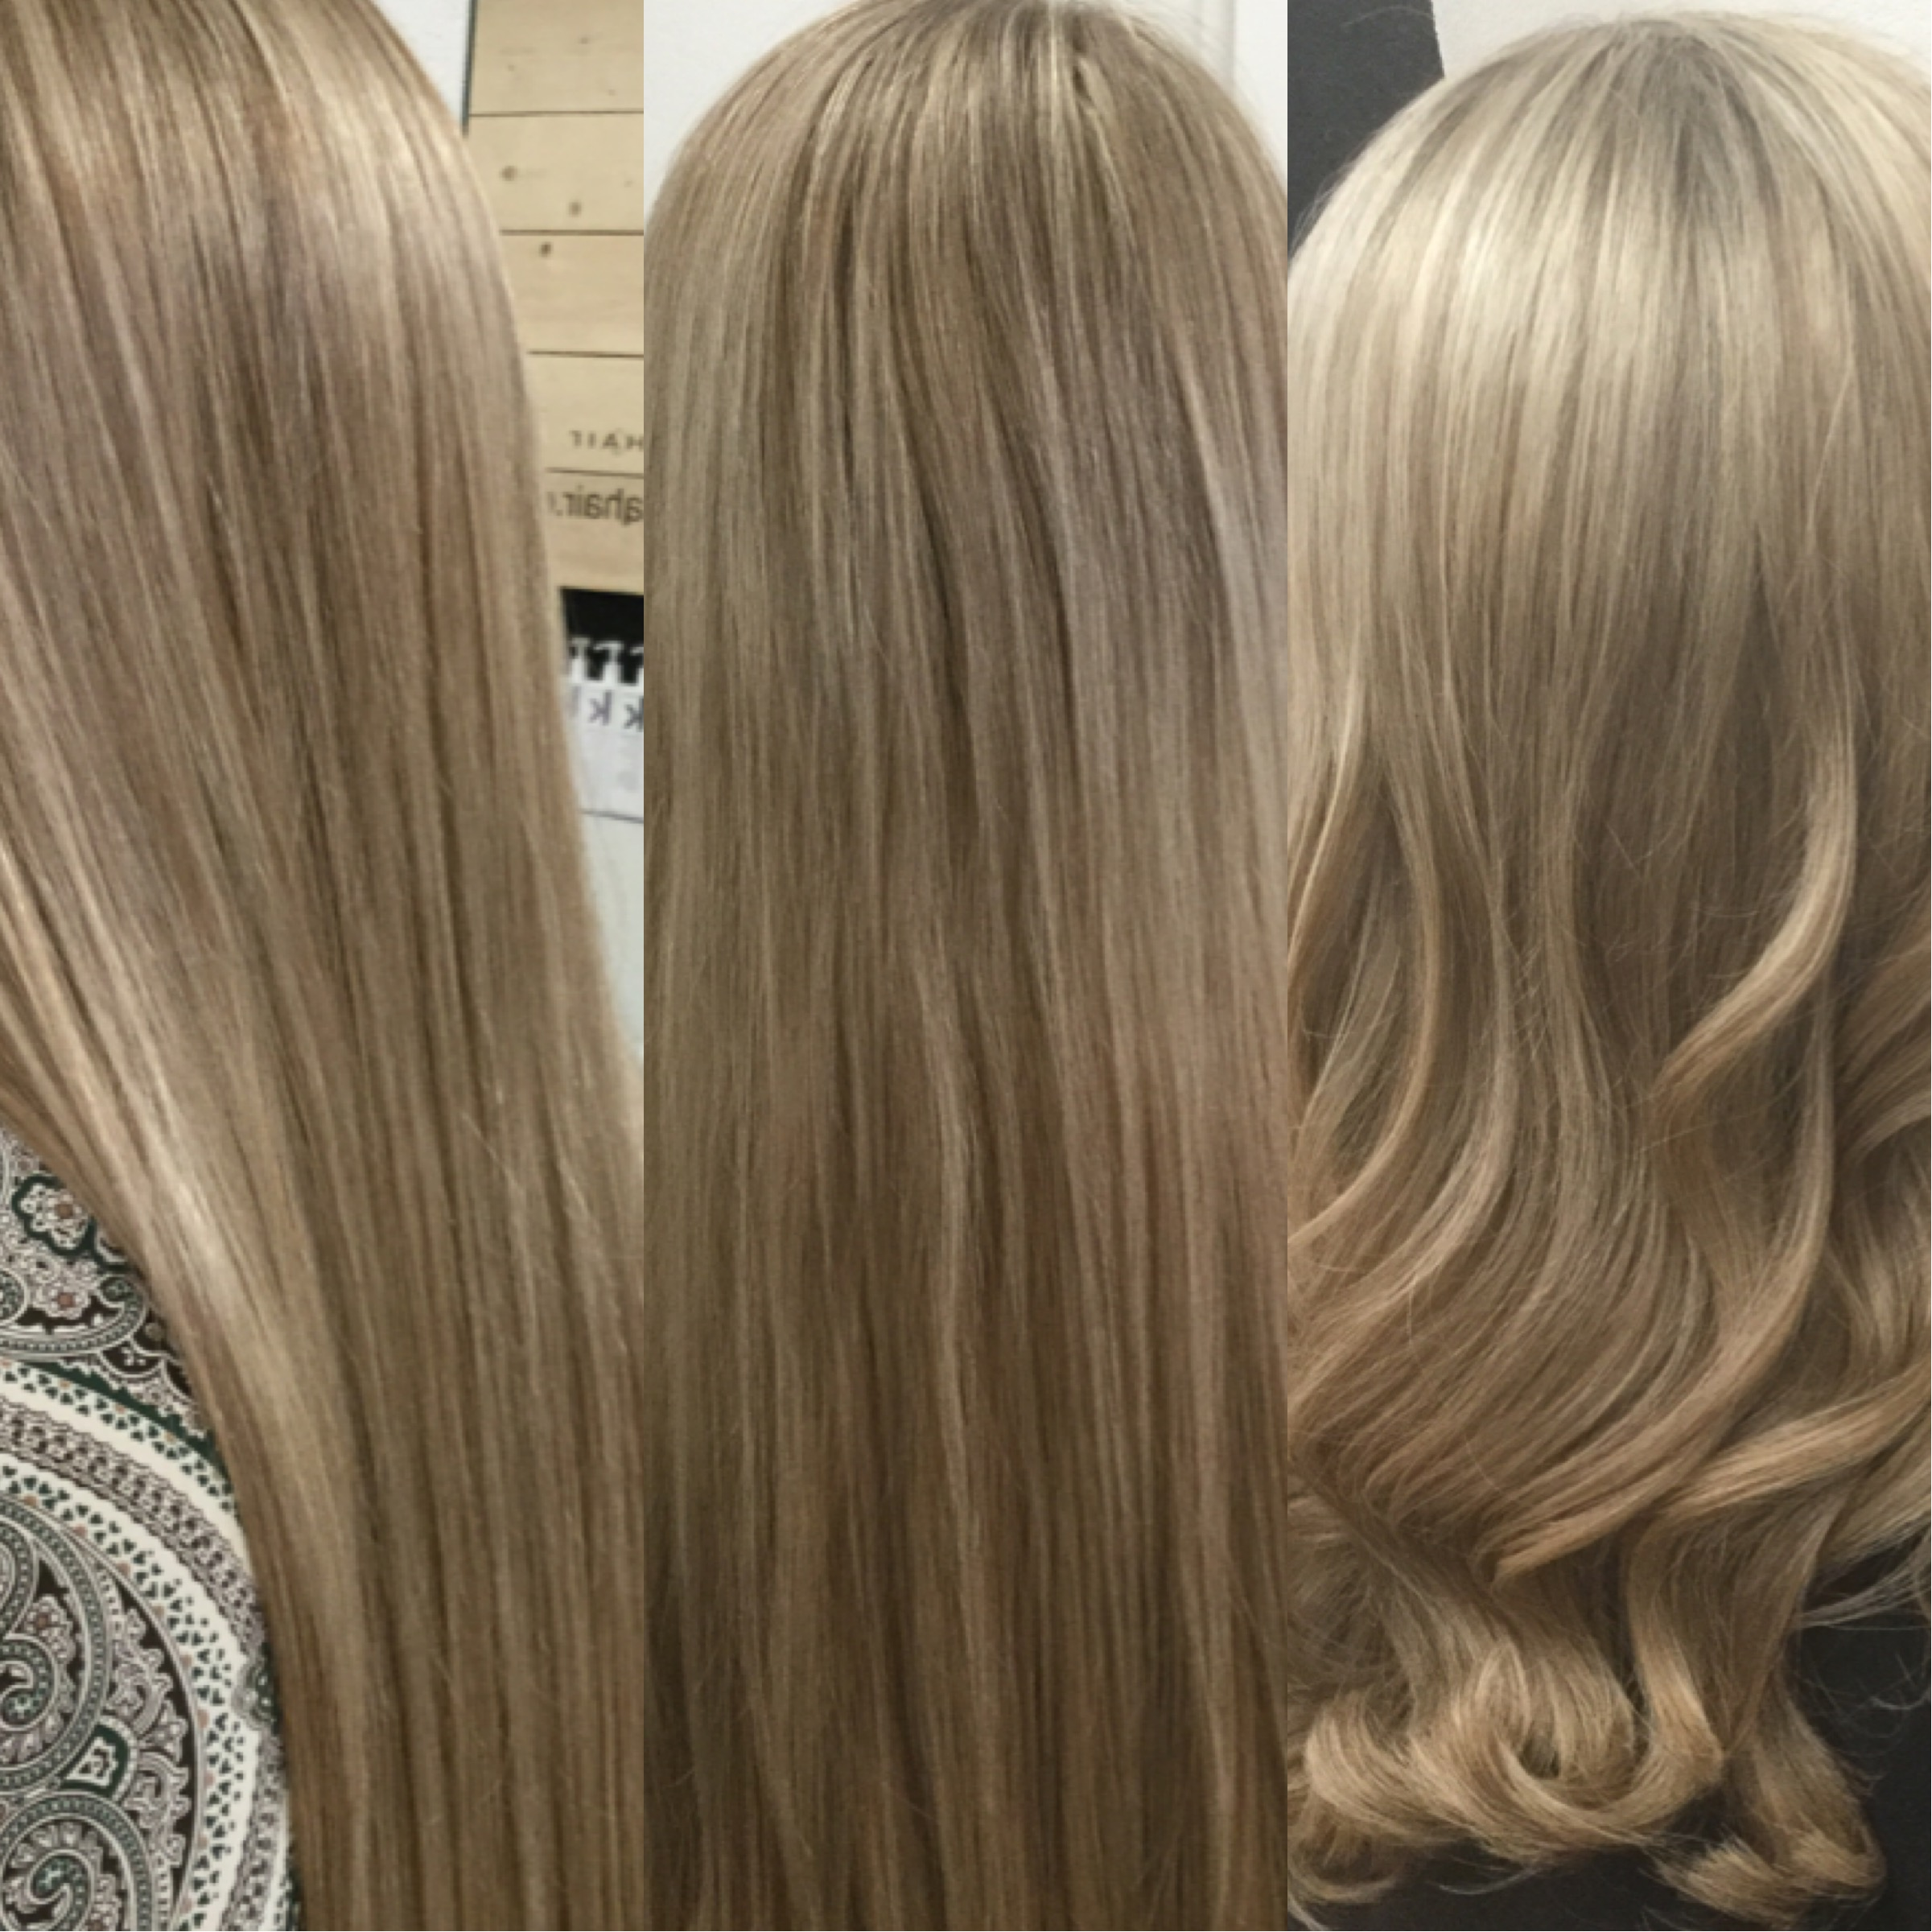 How To Get Strawberry Blonde Hair Naturally